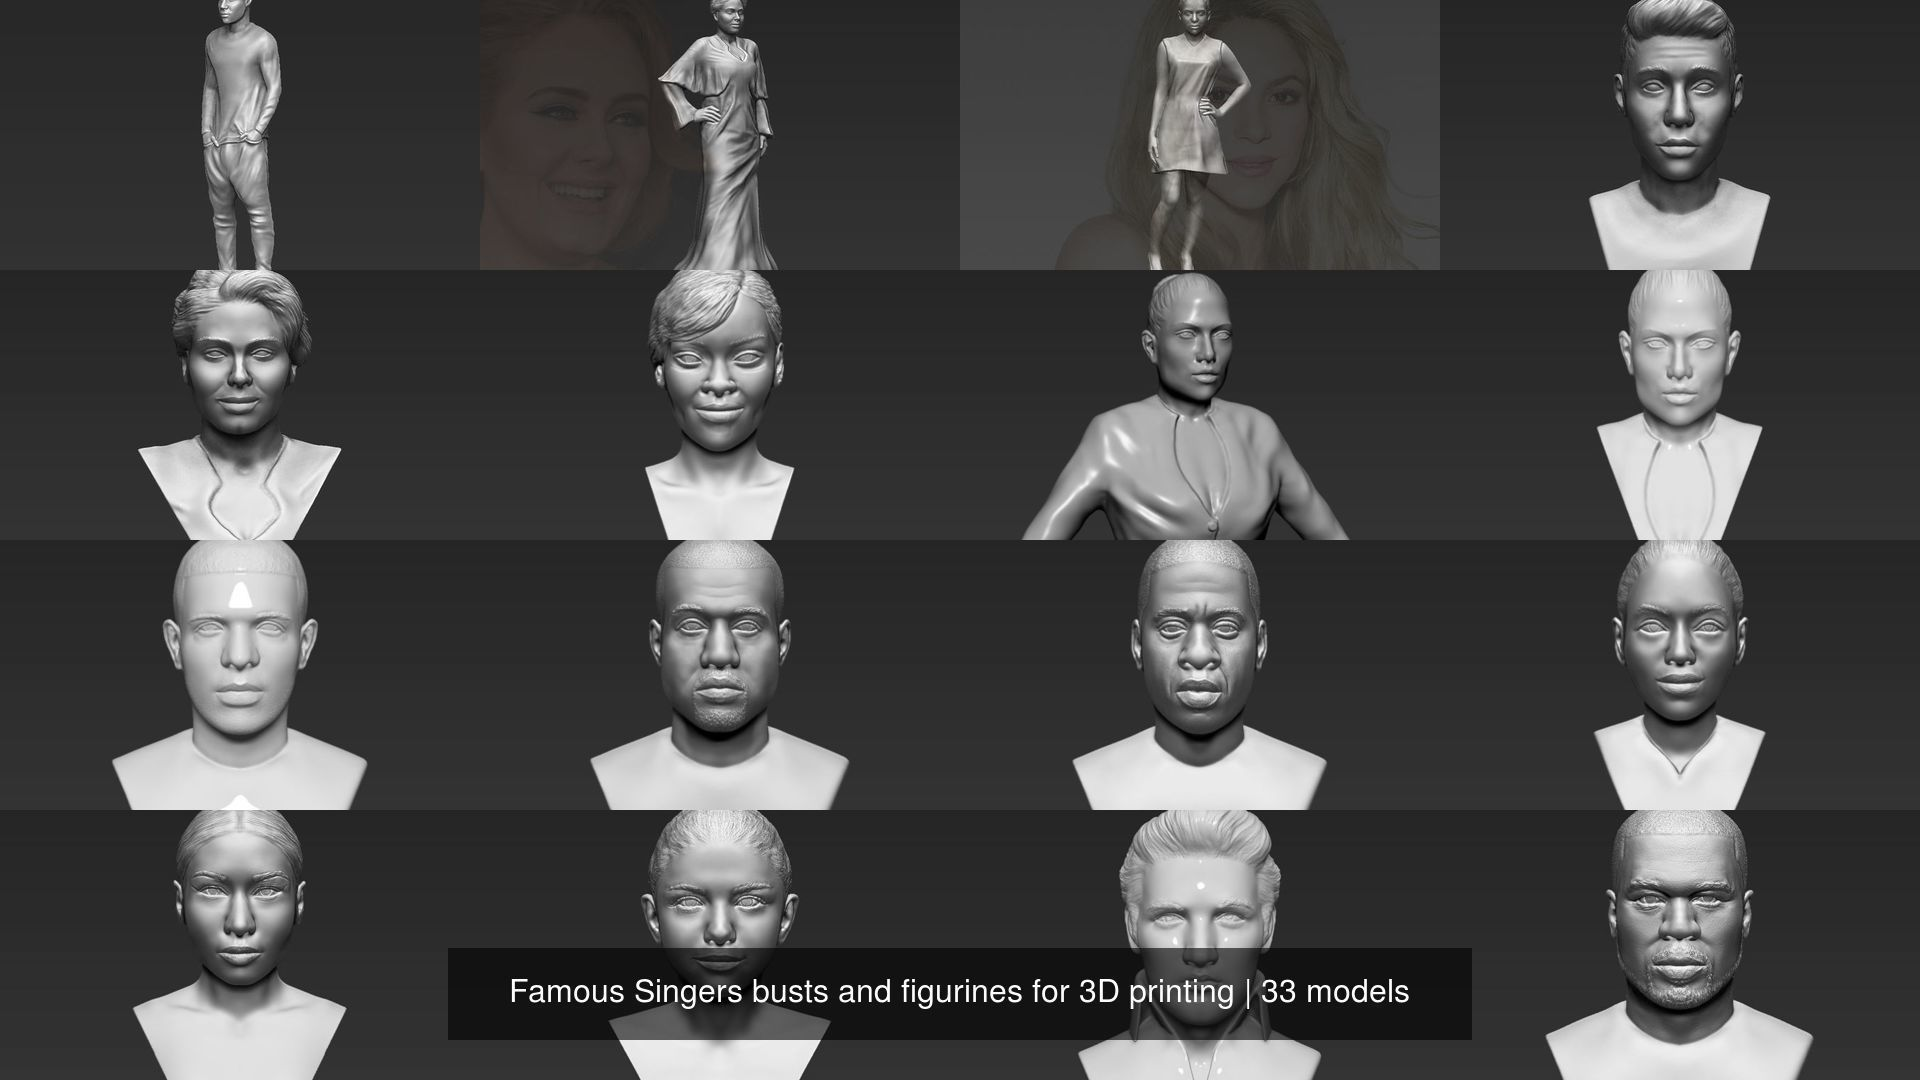 Famous Singers busts and figurines for 3D printing